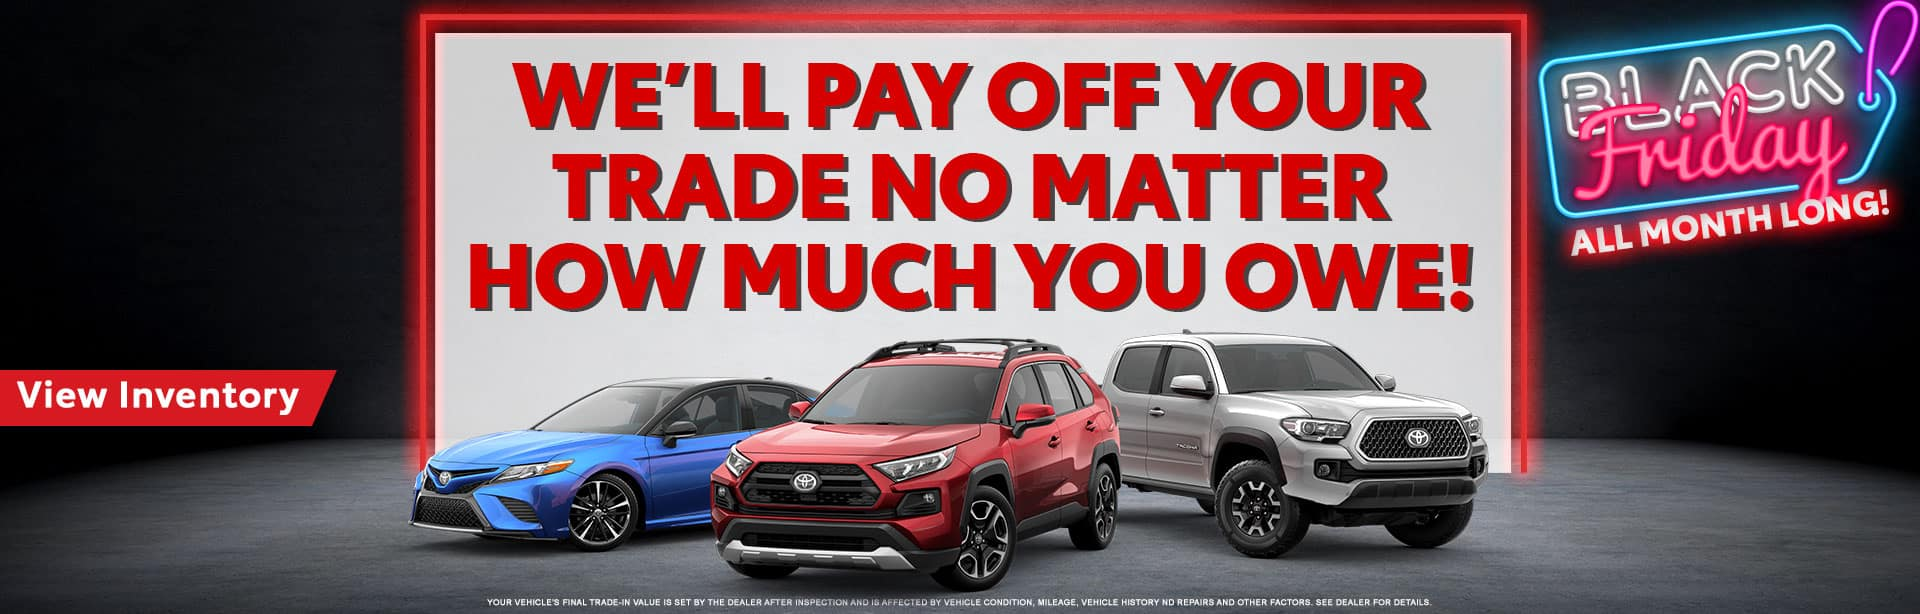 Toyota Pay By Phone >> Bev Smith Toyota Toyota Dealer In Fort Pierce Fl